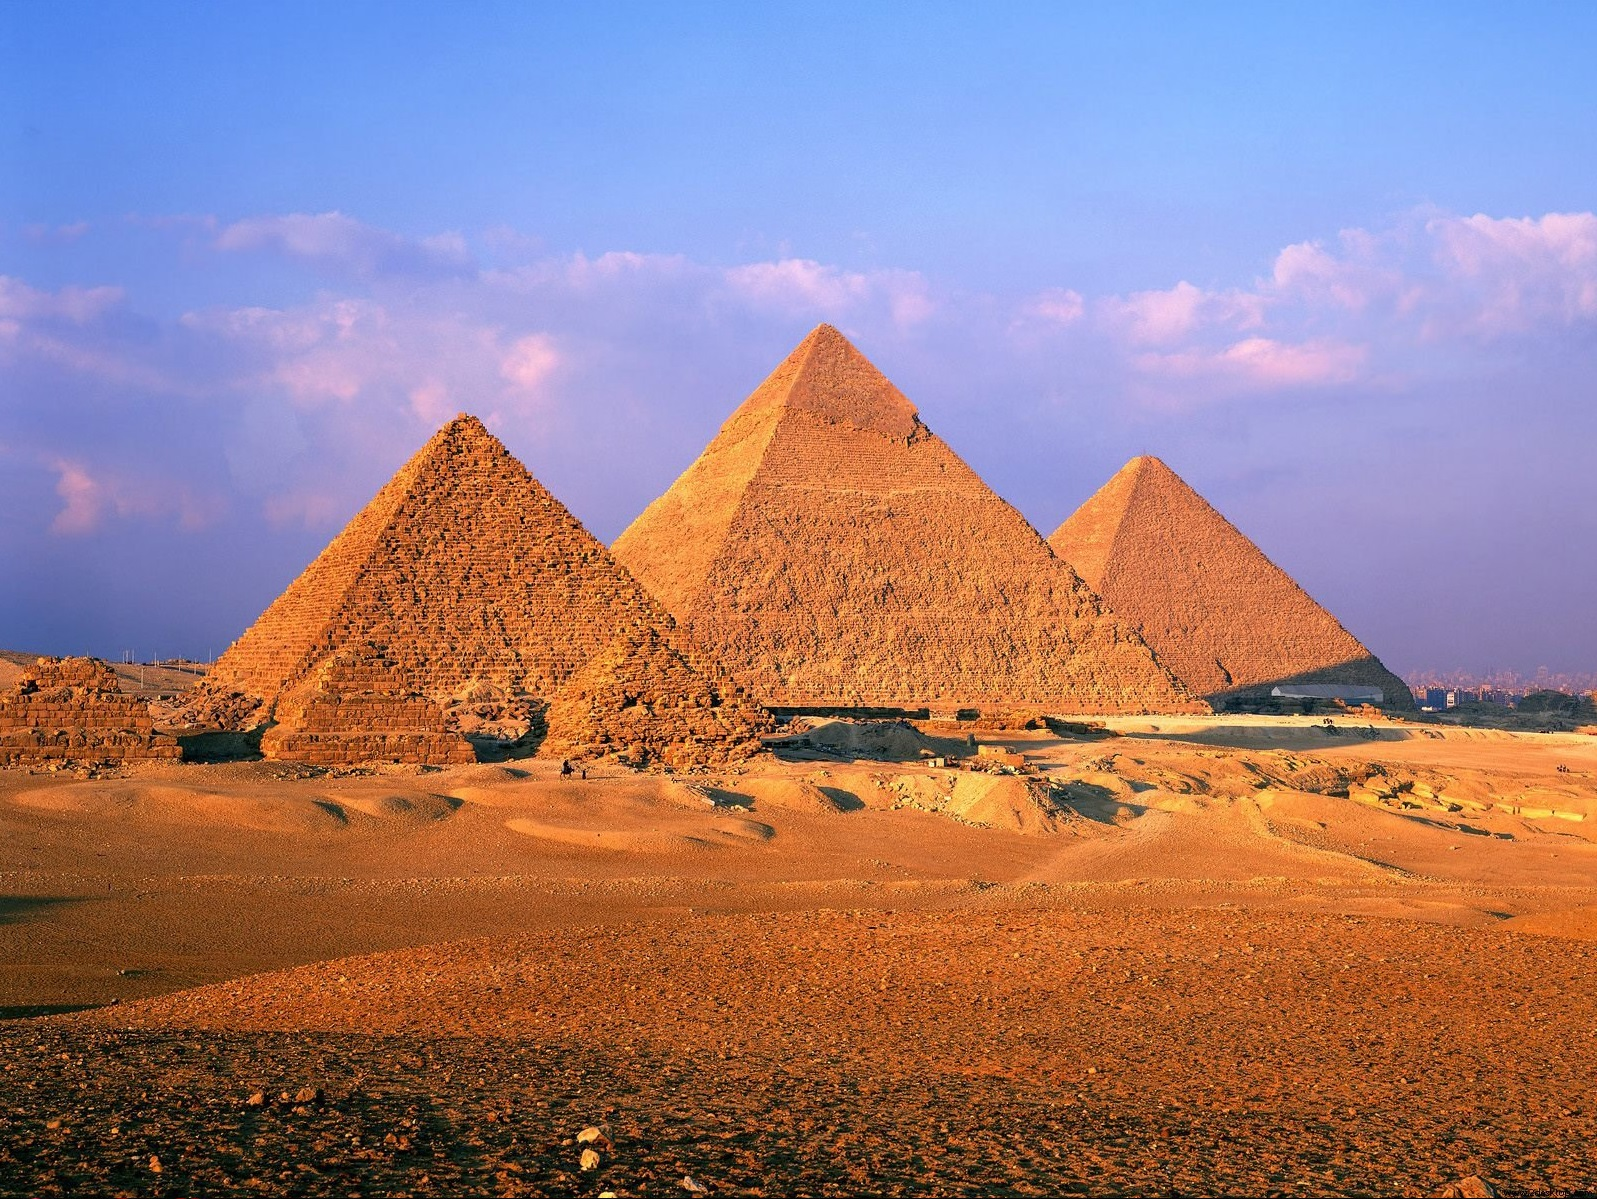 http://aviratgroup.files.wordpress.com/2013/04/great-pyramid-of-giza.jpg